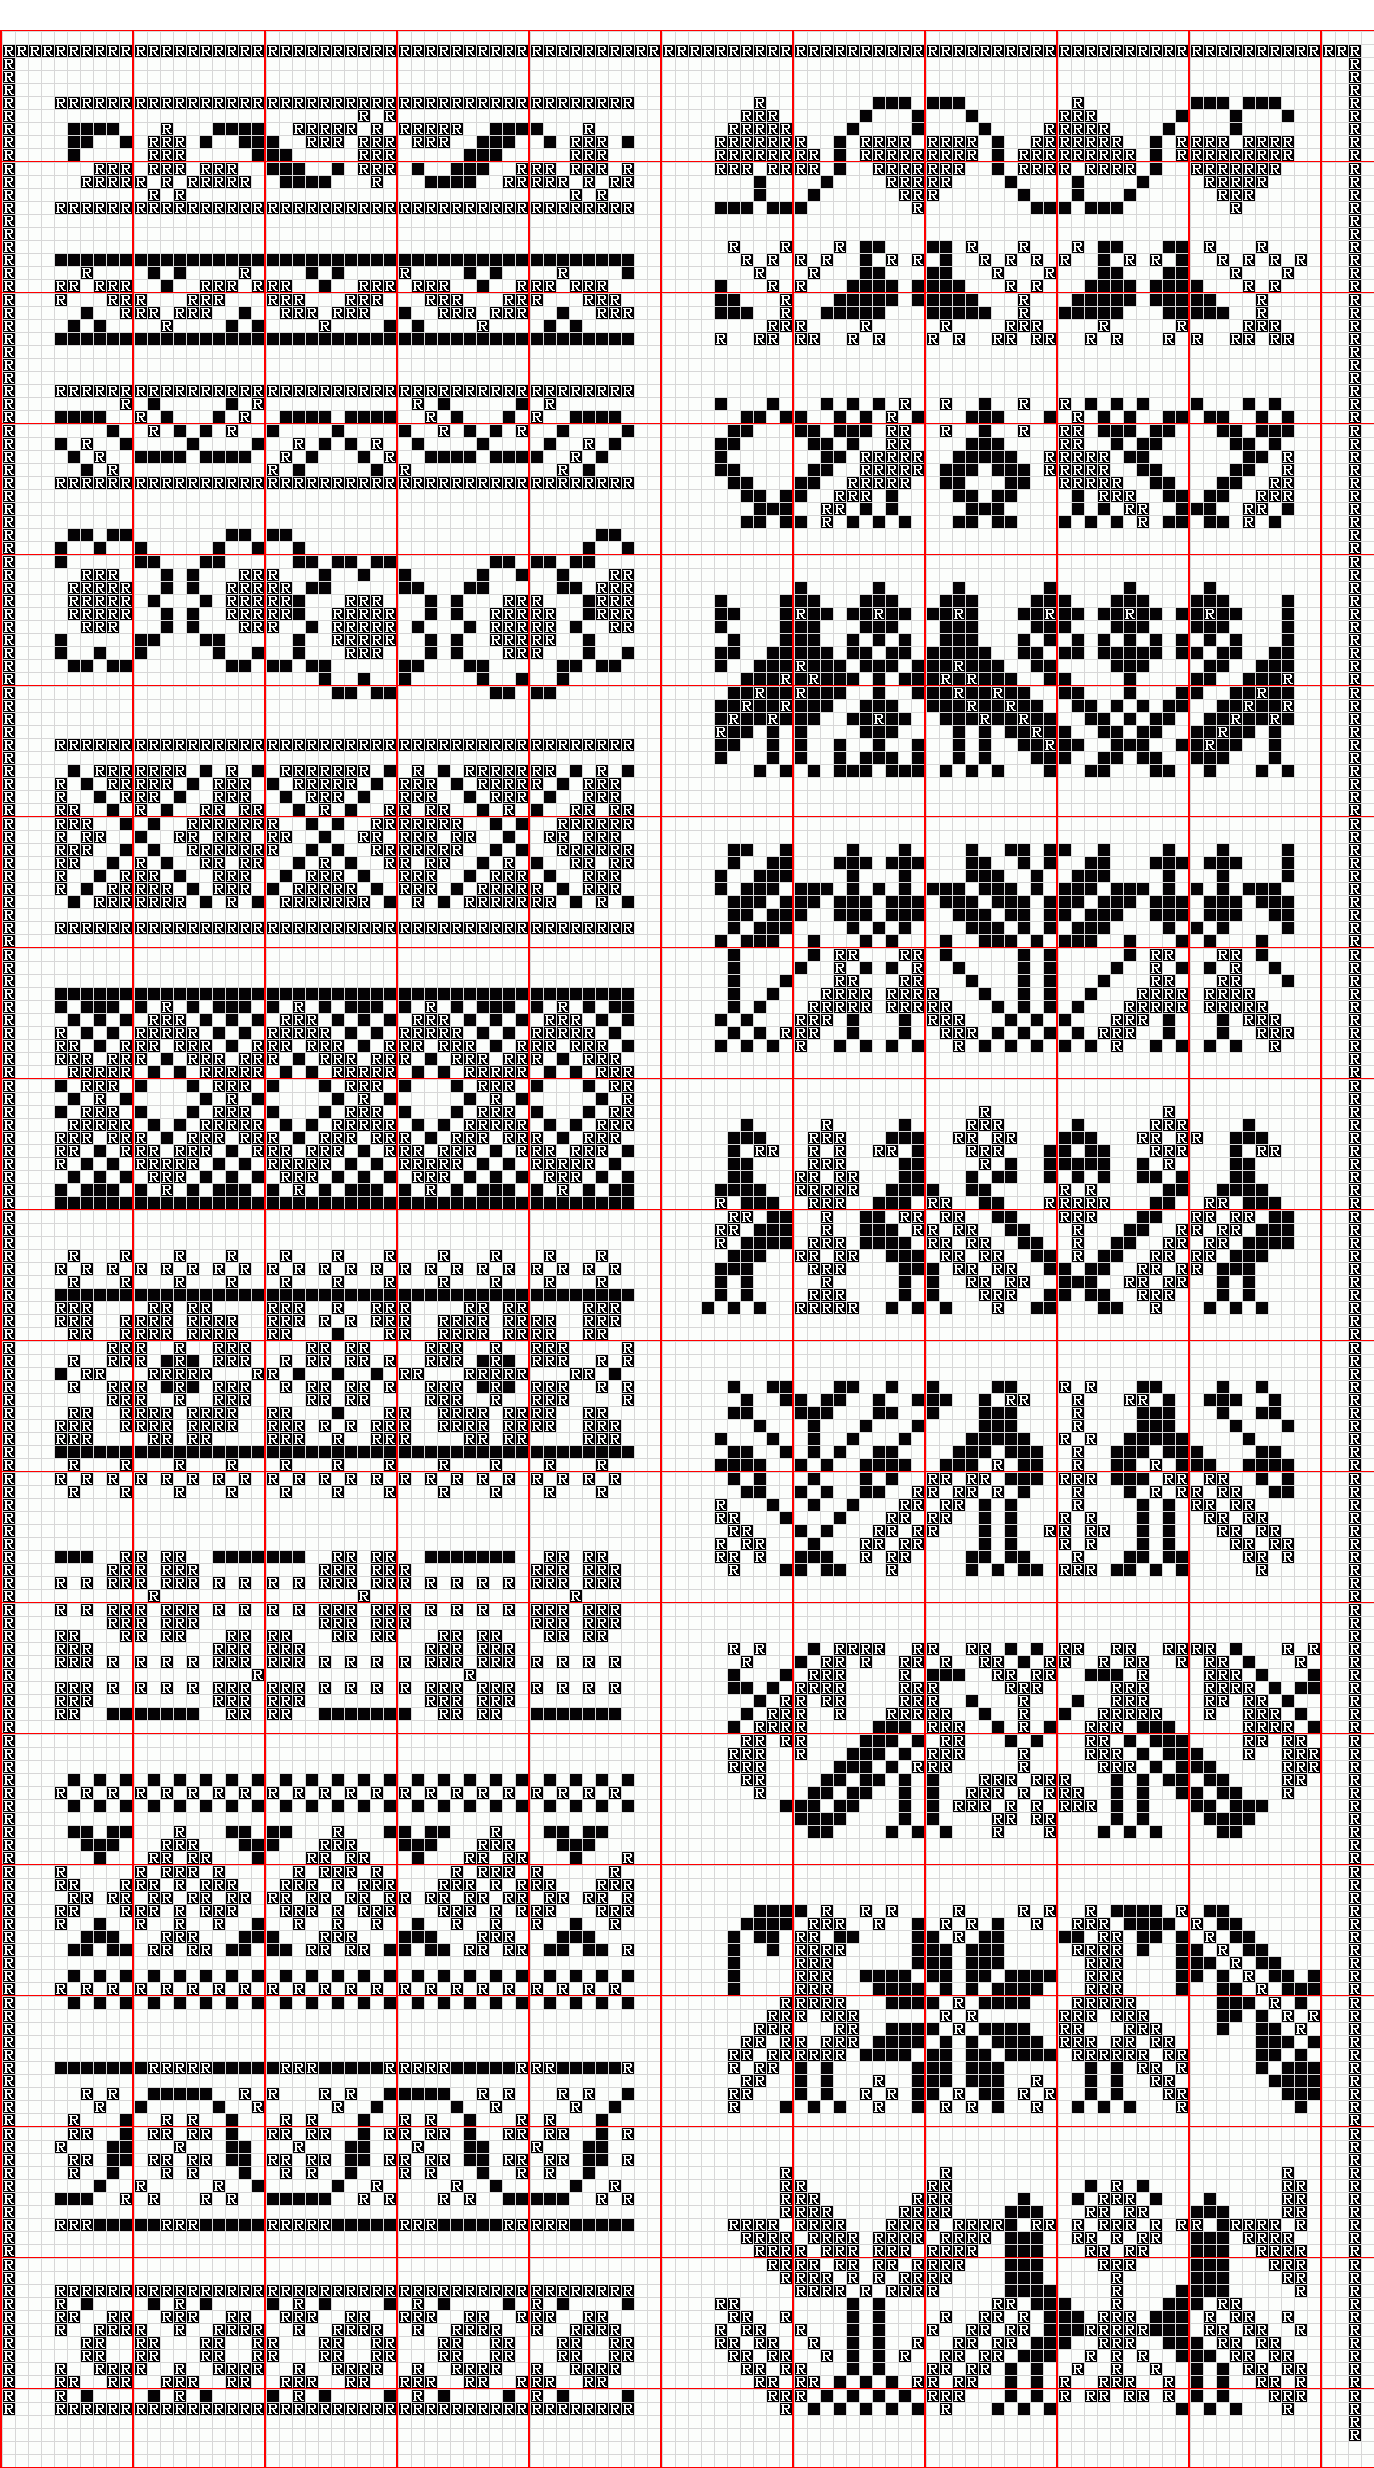 Patterns Knitting Charts Fair Isle Knitting Patterns Cross Stitch Patterns